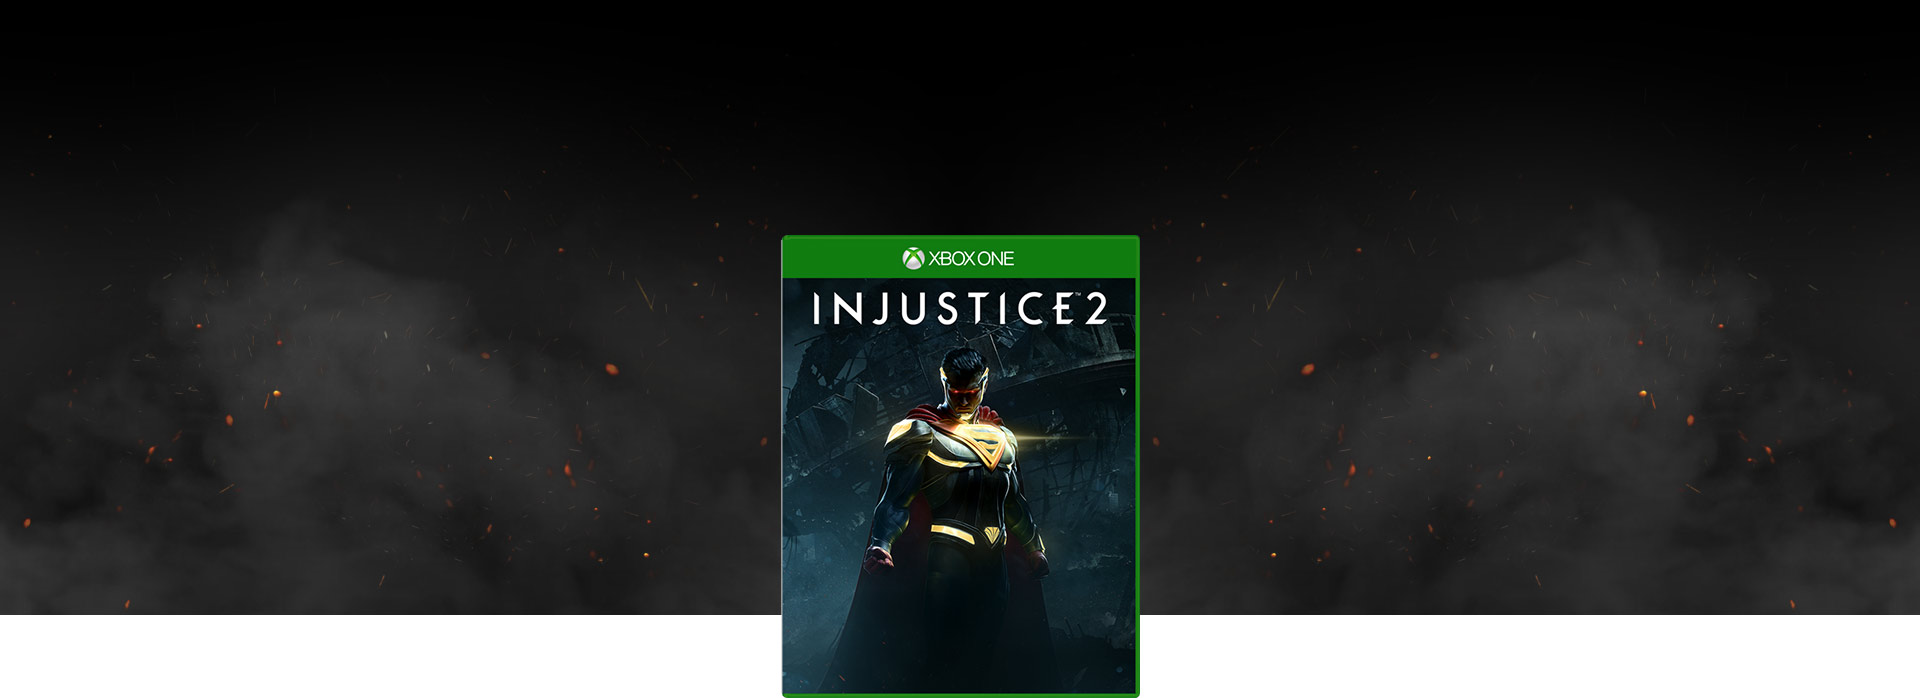 Injustice 2 – coverbillede